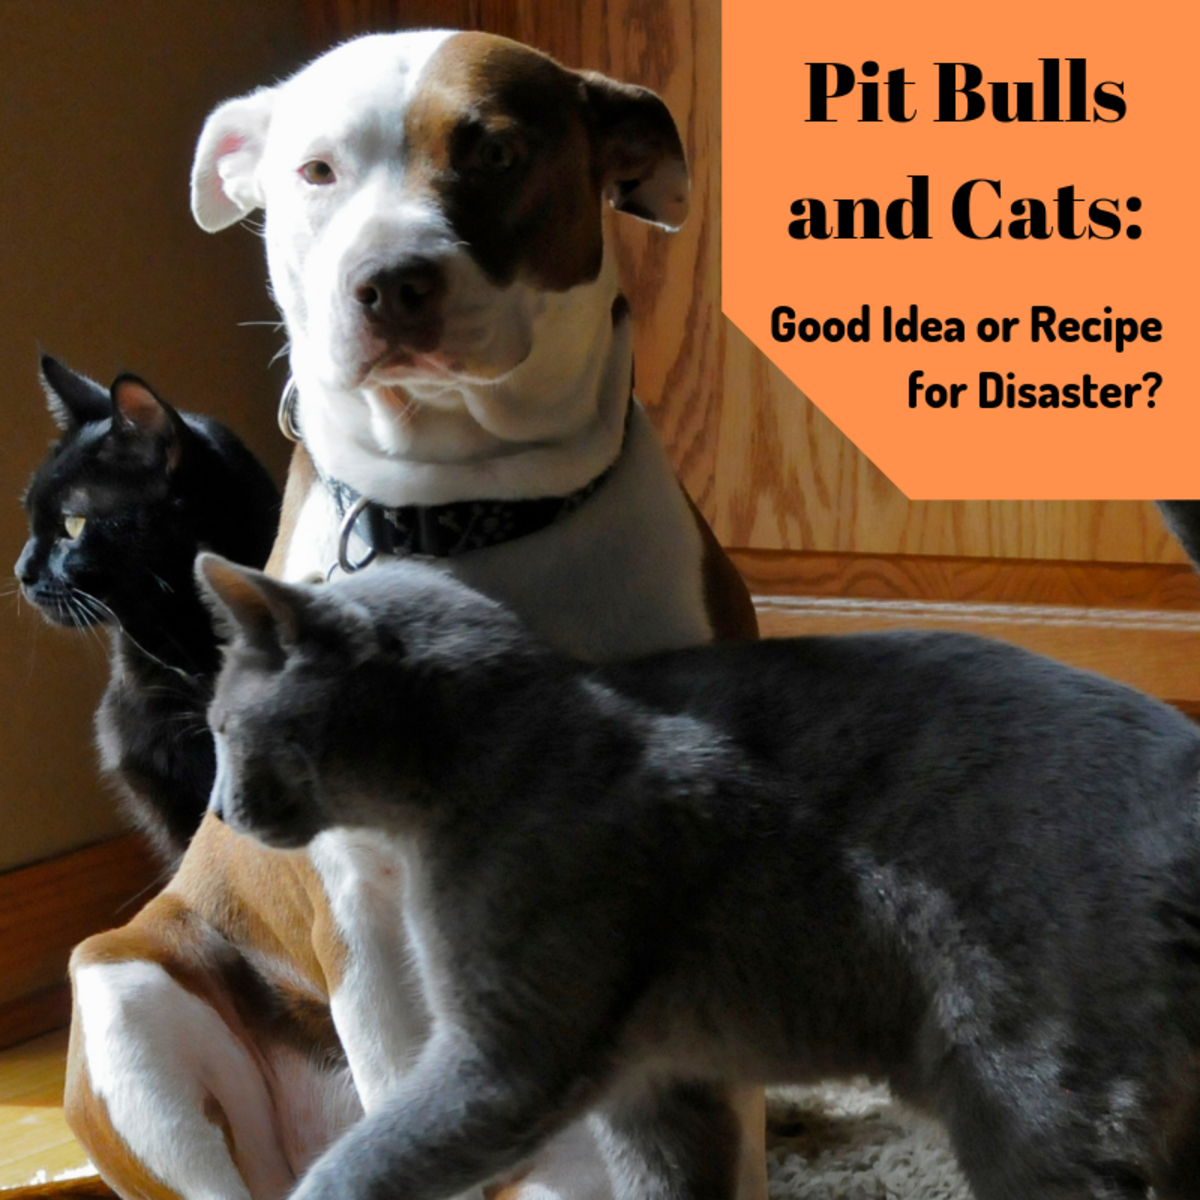 Are pit bulls and cats compatible pets?